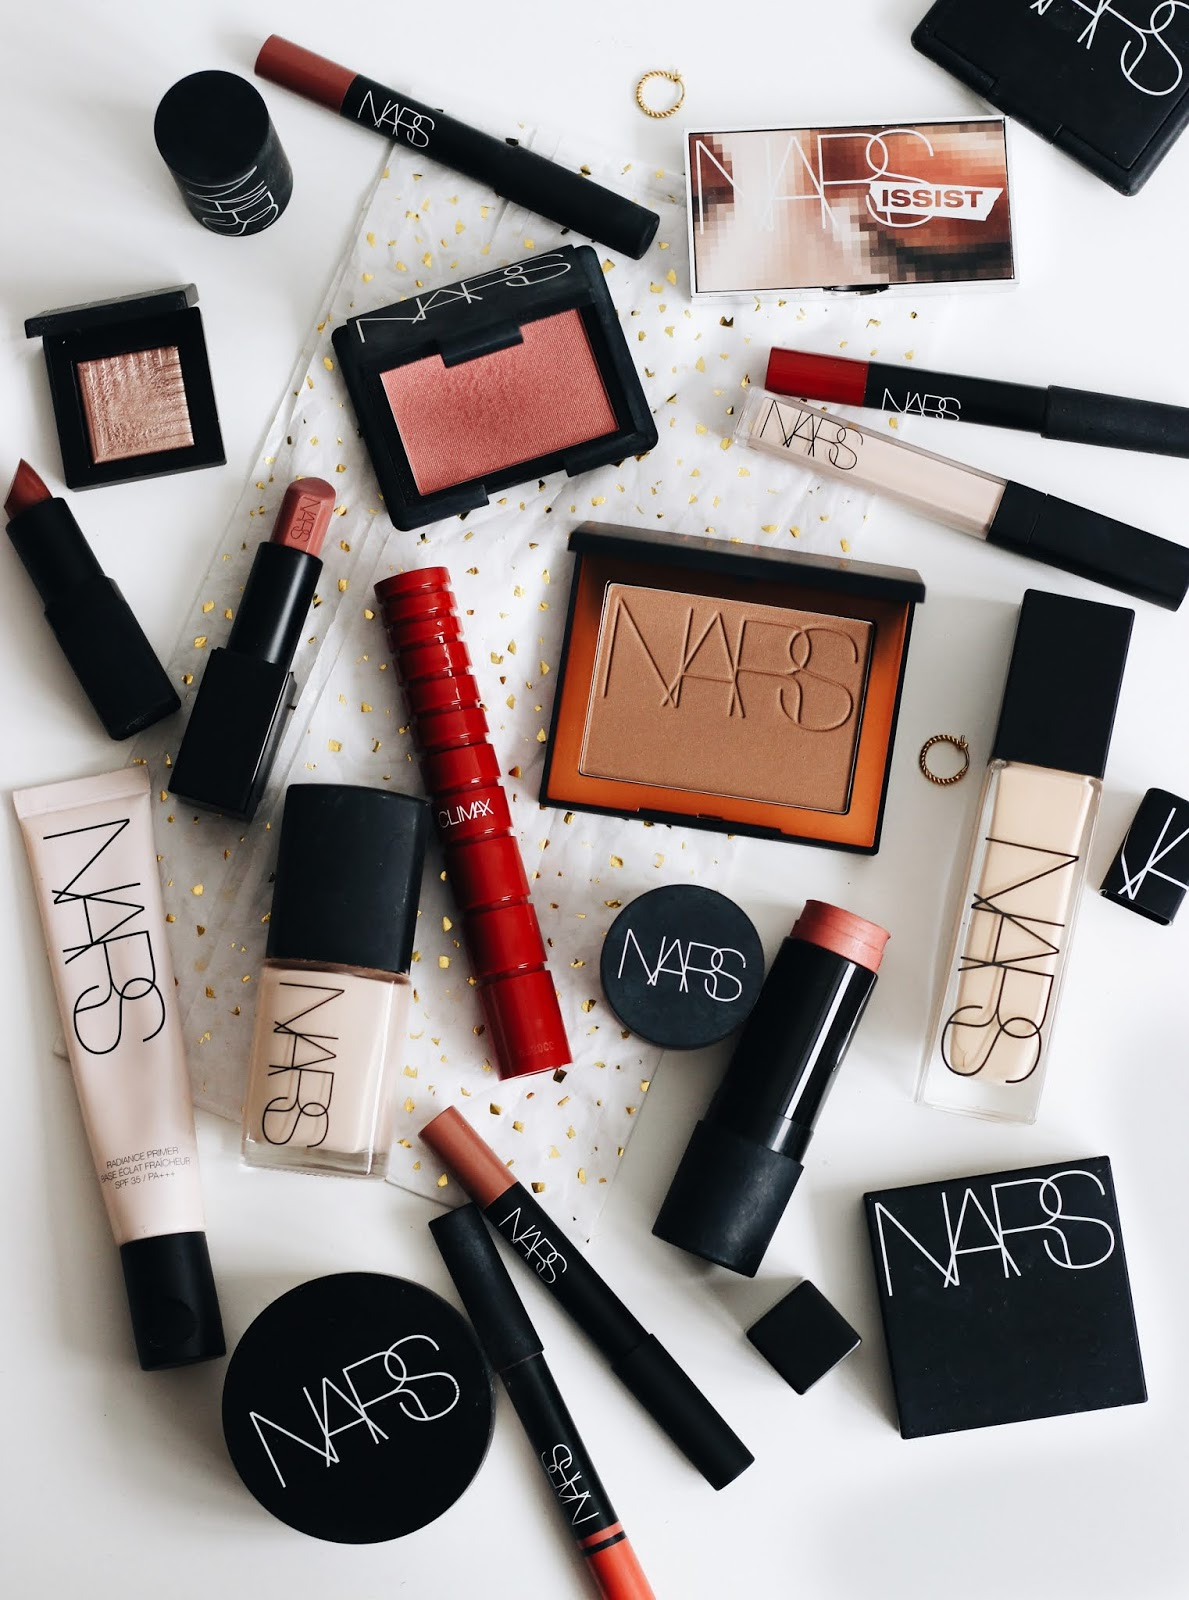 Nars Makeup Collection Review